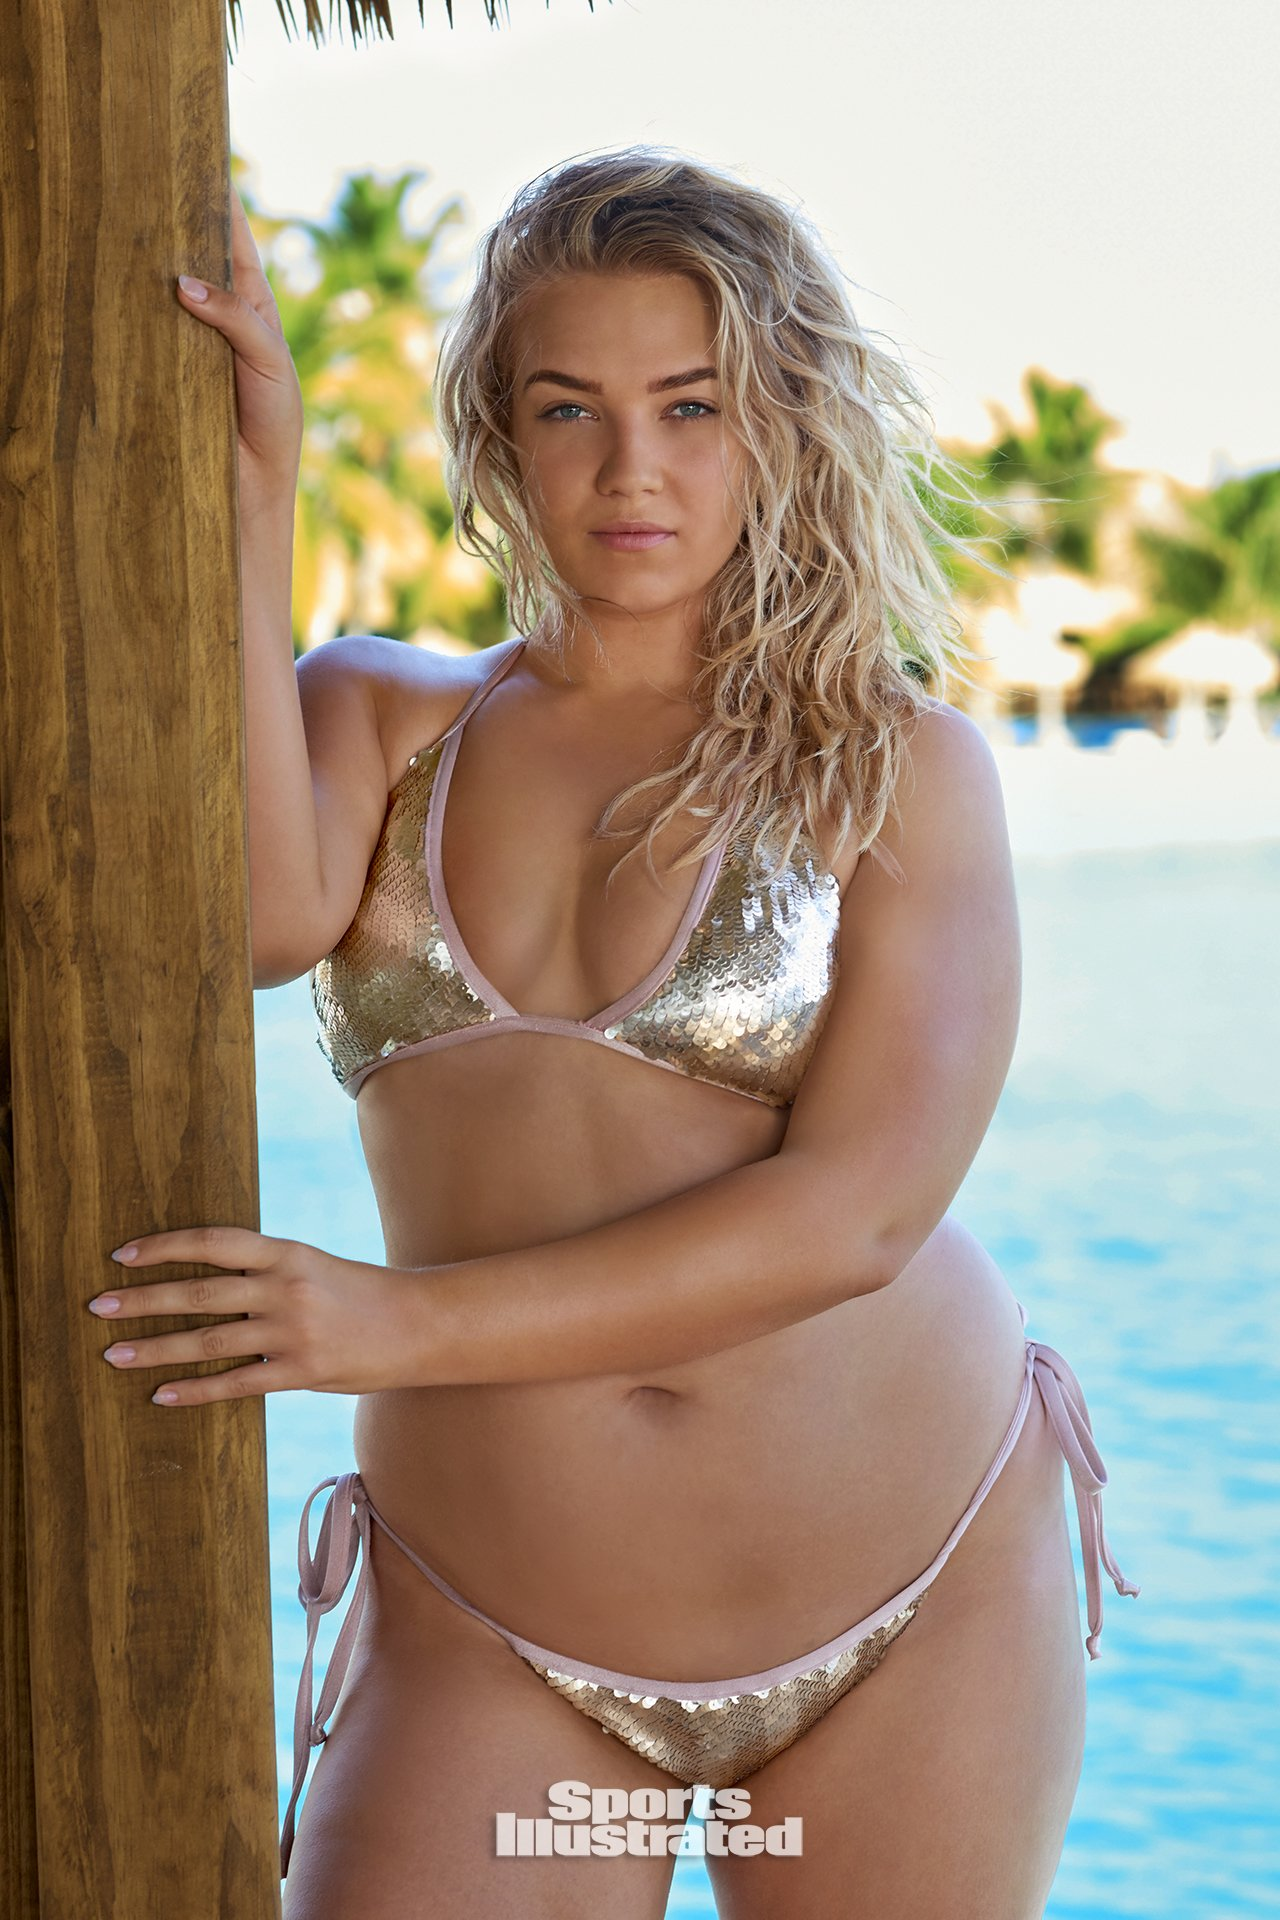 Sports Illustrated Swimsuit Issue 2018017.jpg